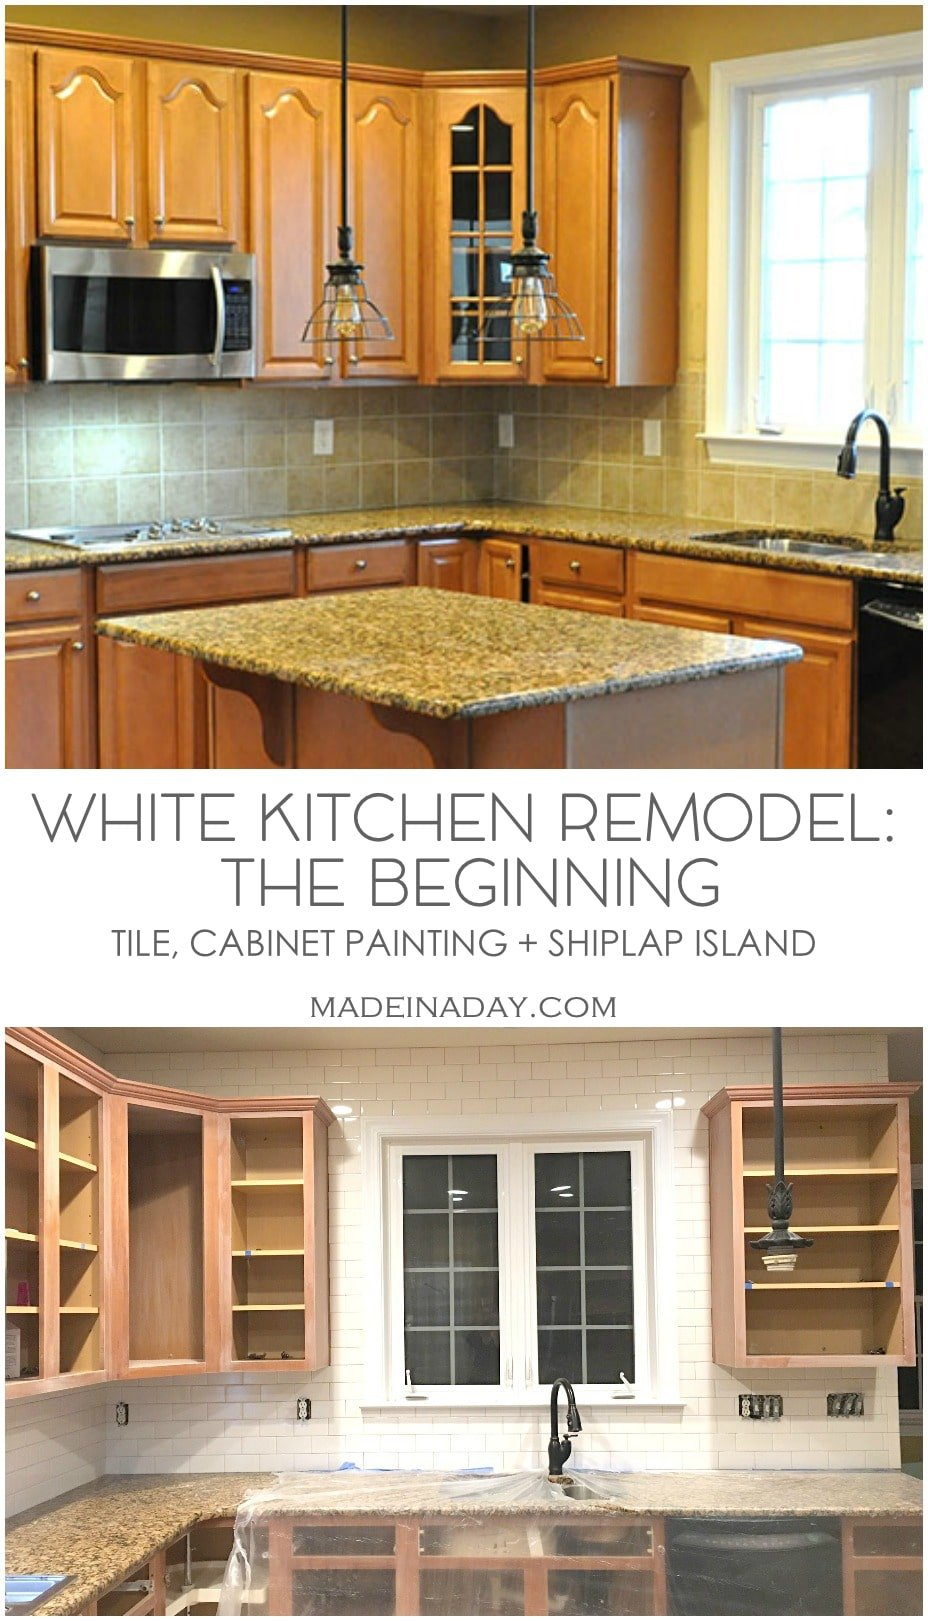 White Kitchen Remodel: The Beginning Stage, Out with the old in with the new! Subway tile above cabinets, painted cabinets shiplap island.